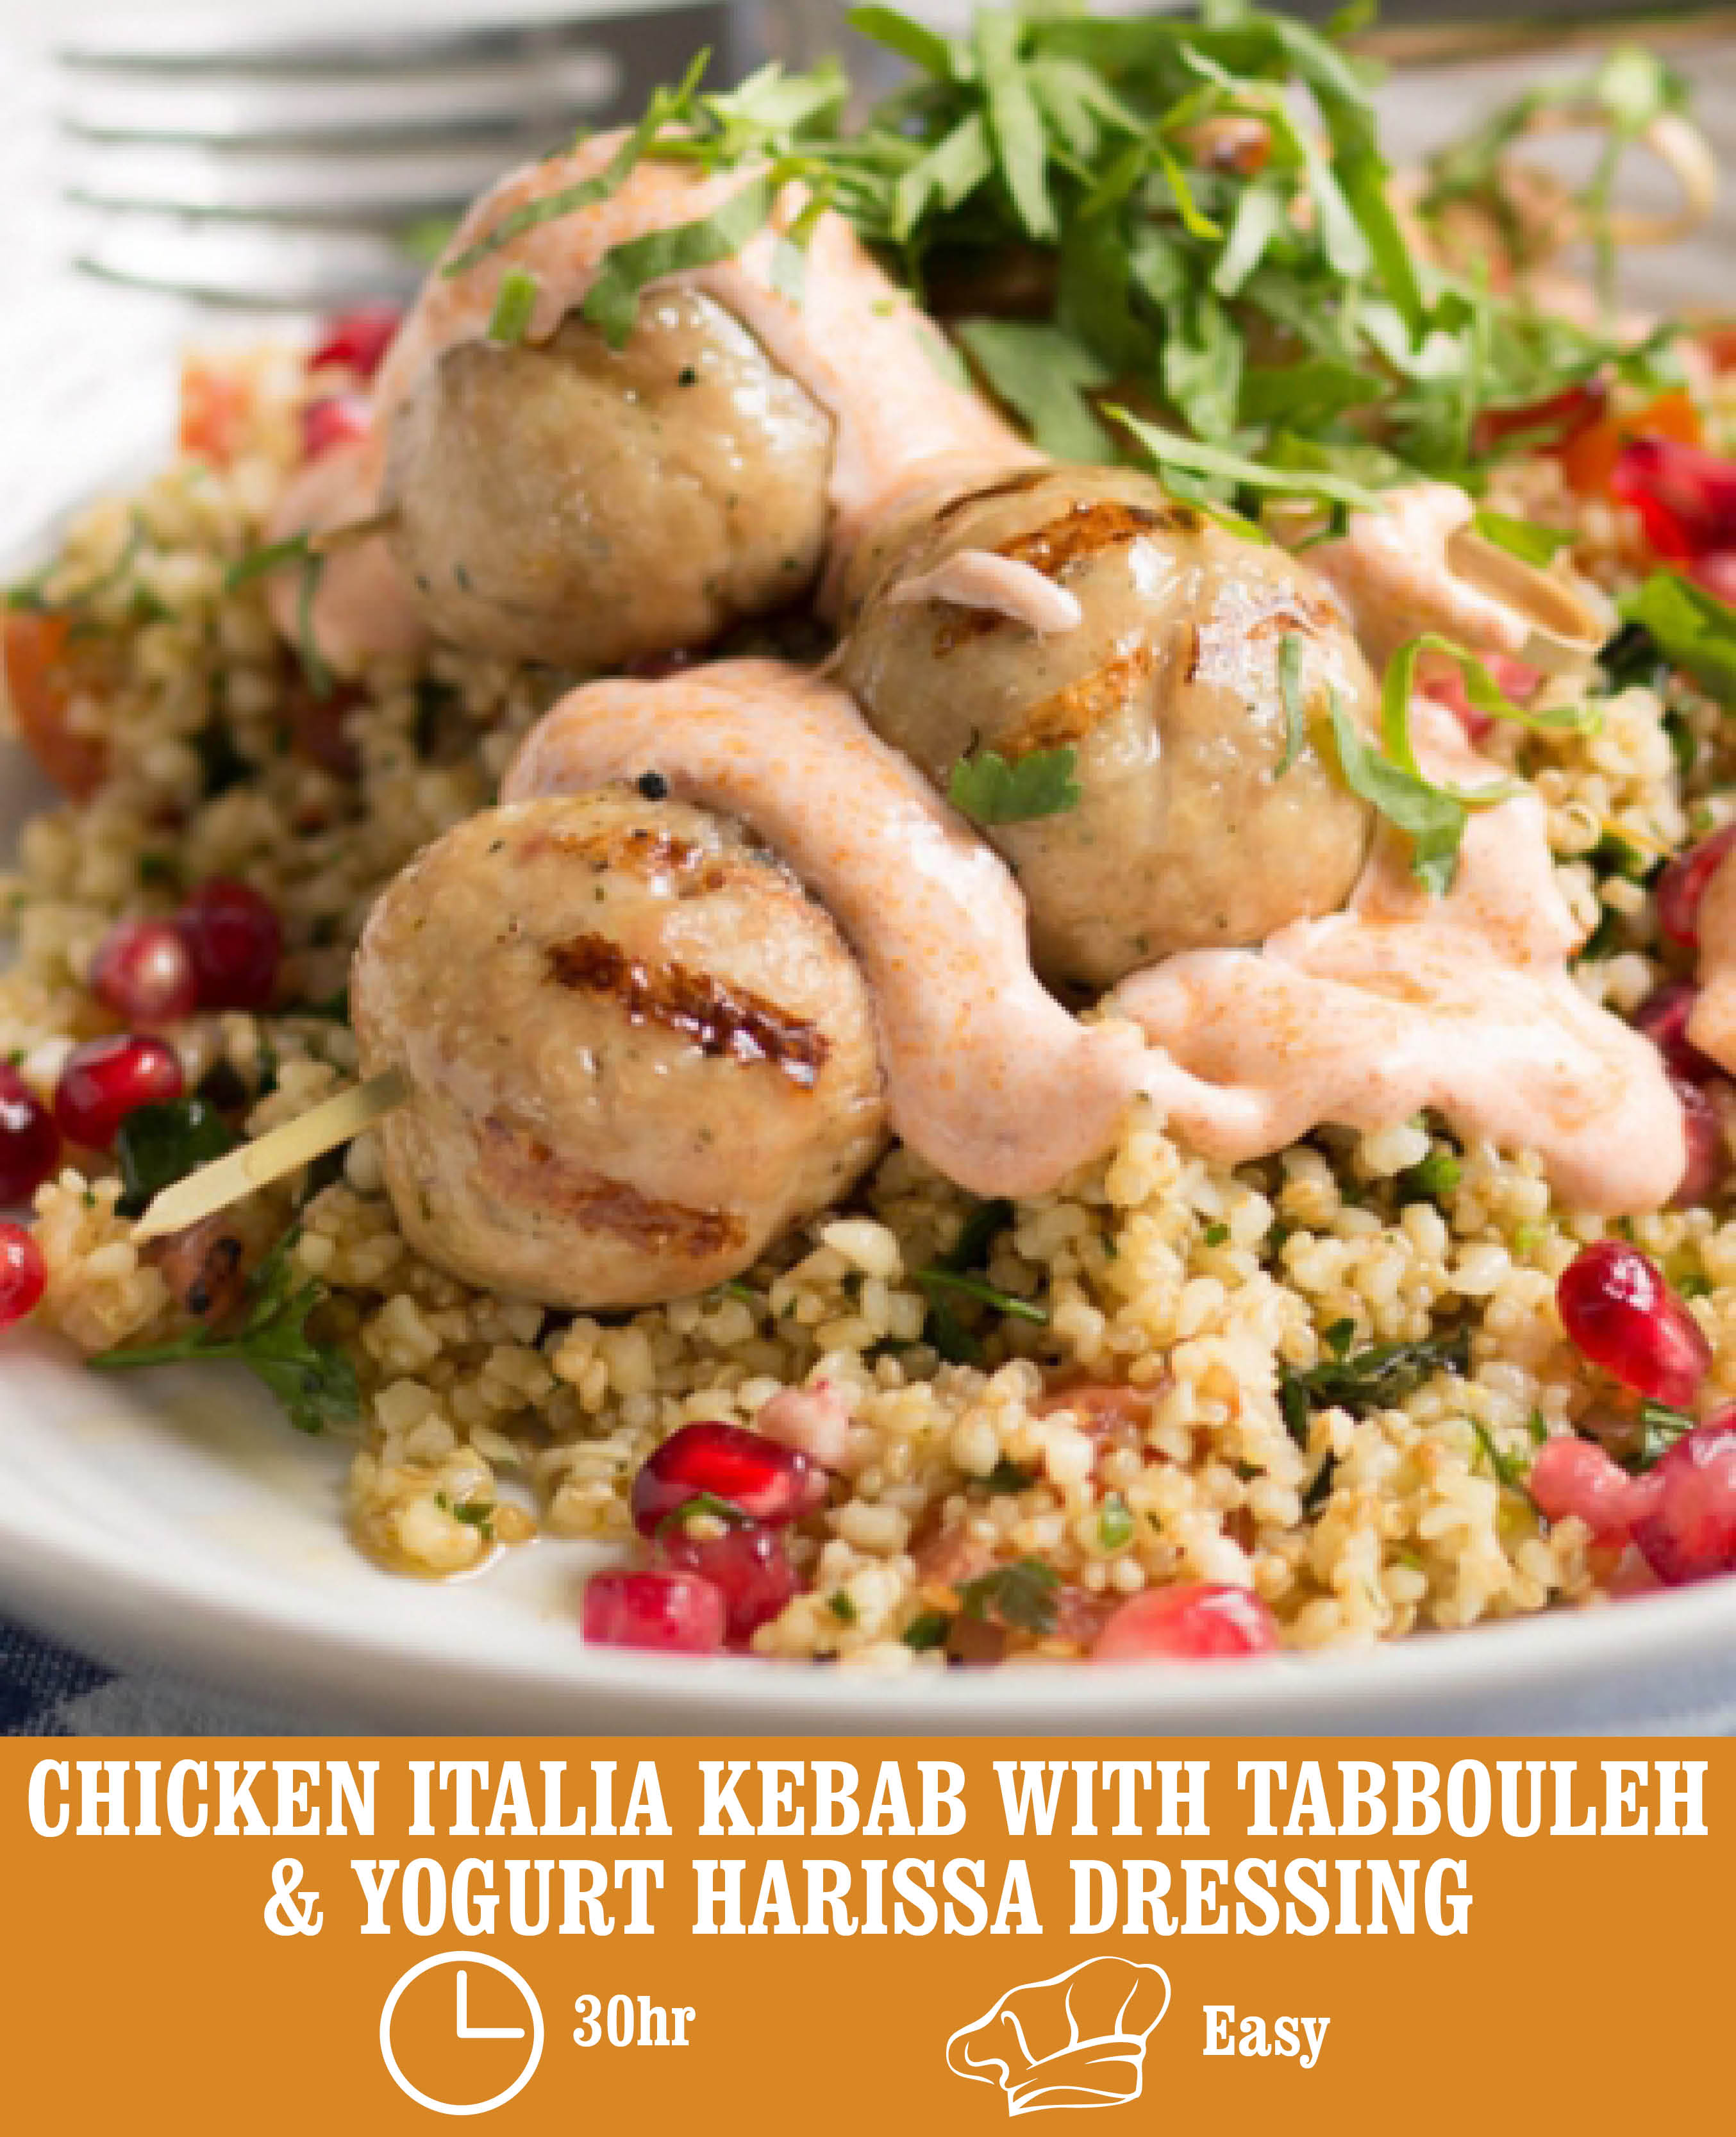 CHICKEN ITALIA SAUSAGE KEBAB SKEWERS WITH TABBOULEH & YOGURT HARISSA DRESSING